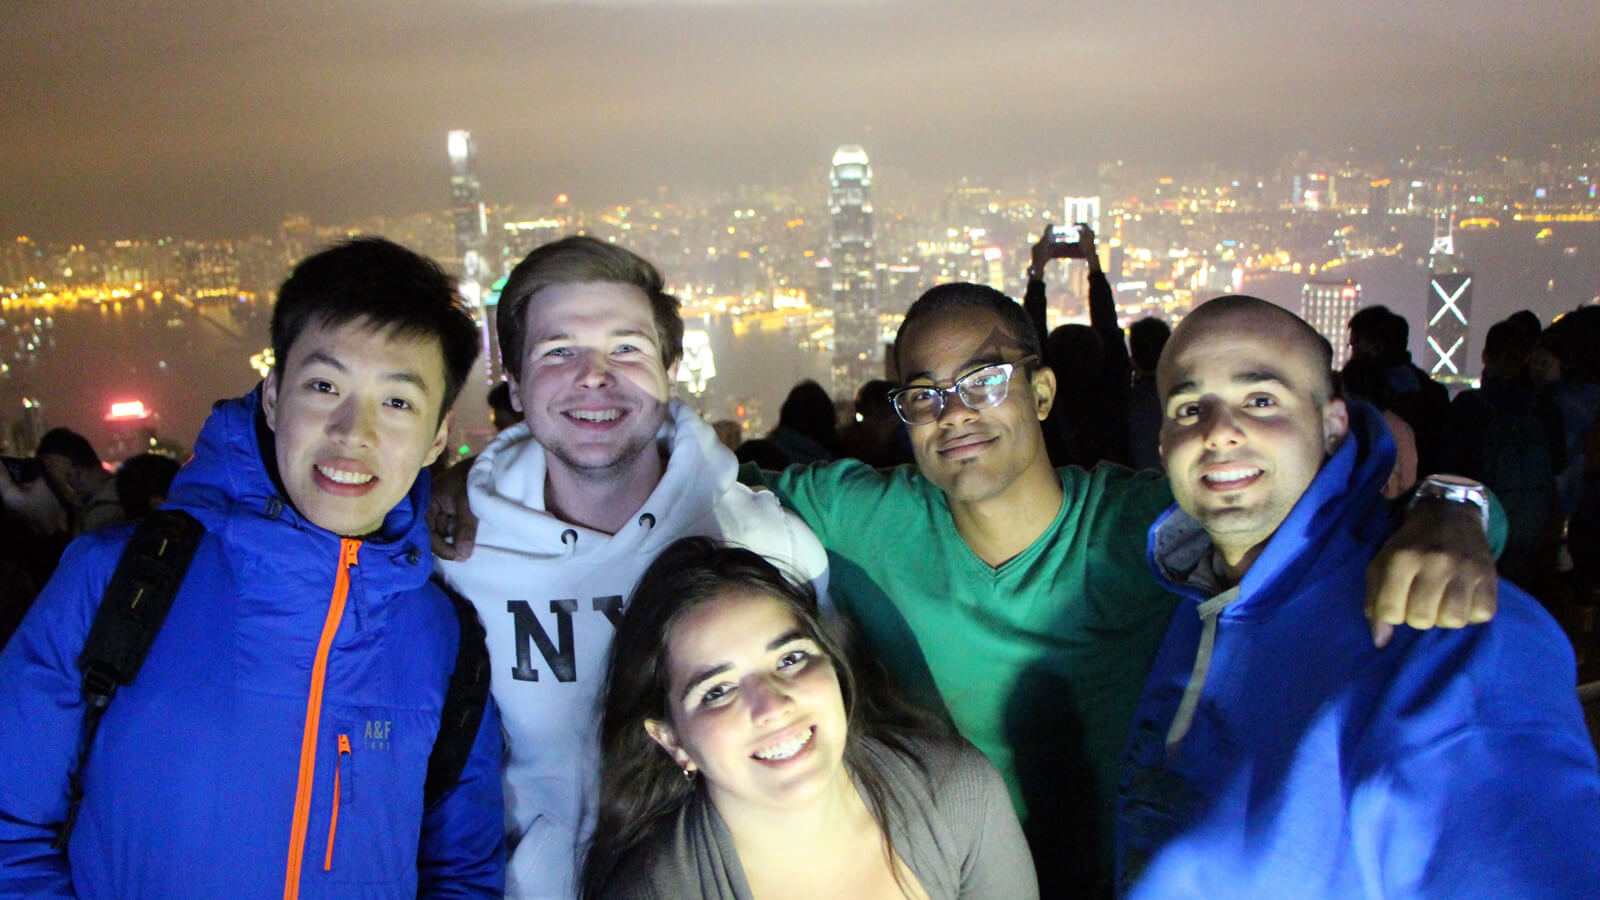 Duke Fuqua MMS: DKU students travel in China and see the view from Victoria Peak in Hong Kong